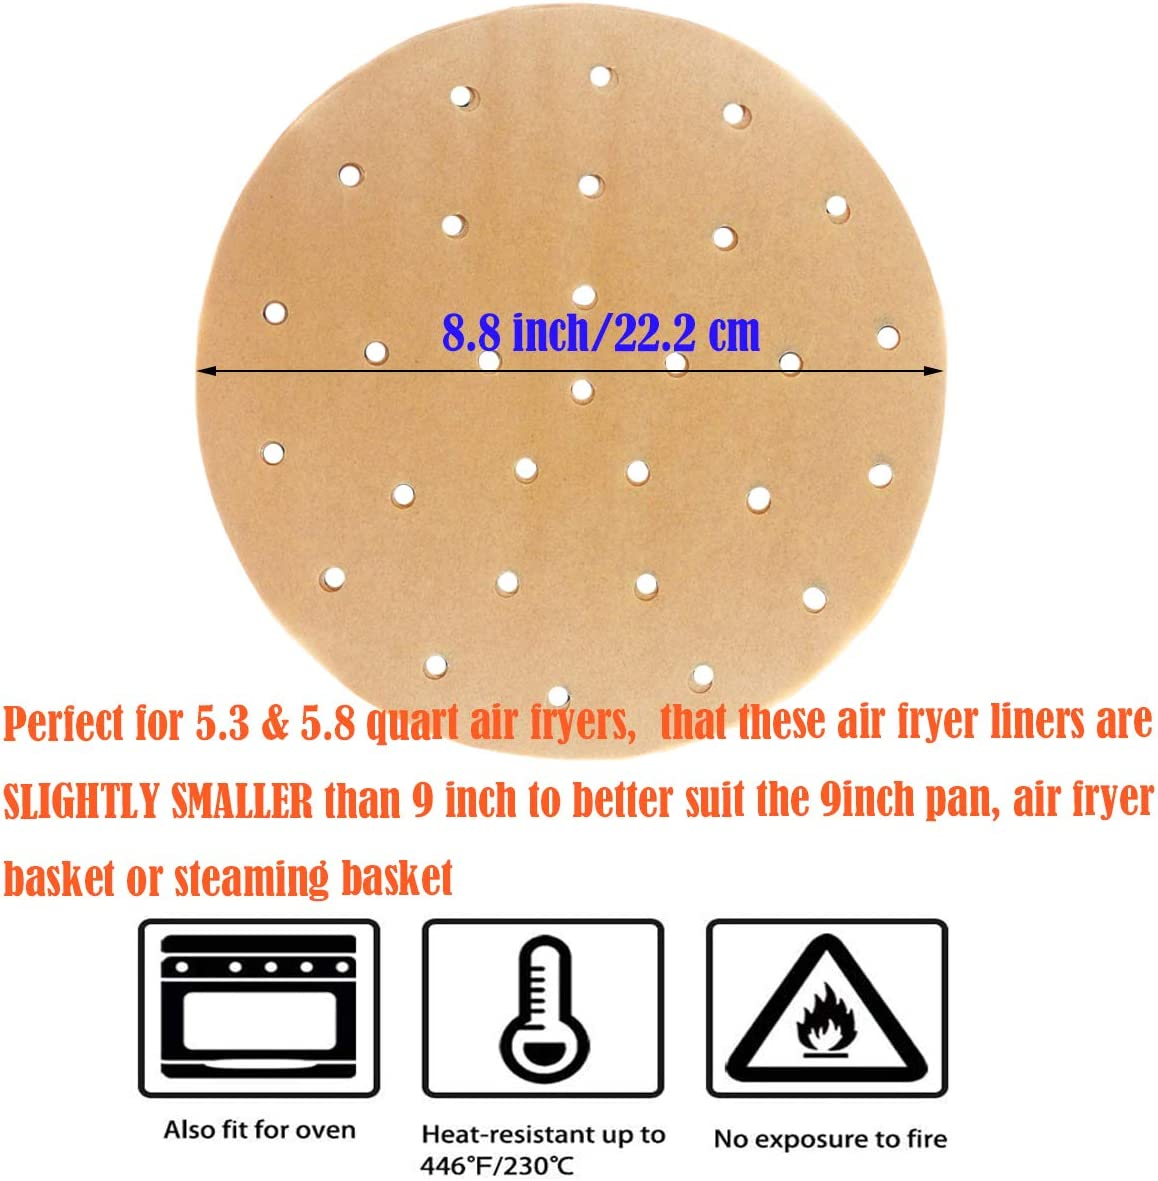 9 Inch Unbleached Air Fryer Liner Set of 200 Perforated Round Parchment Paper//Bamboo Steamer Liner for 5.8 qt Air Fryer Steaming Basket and More